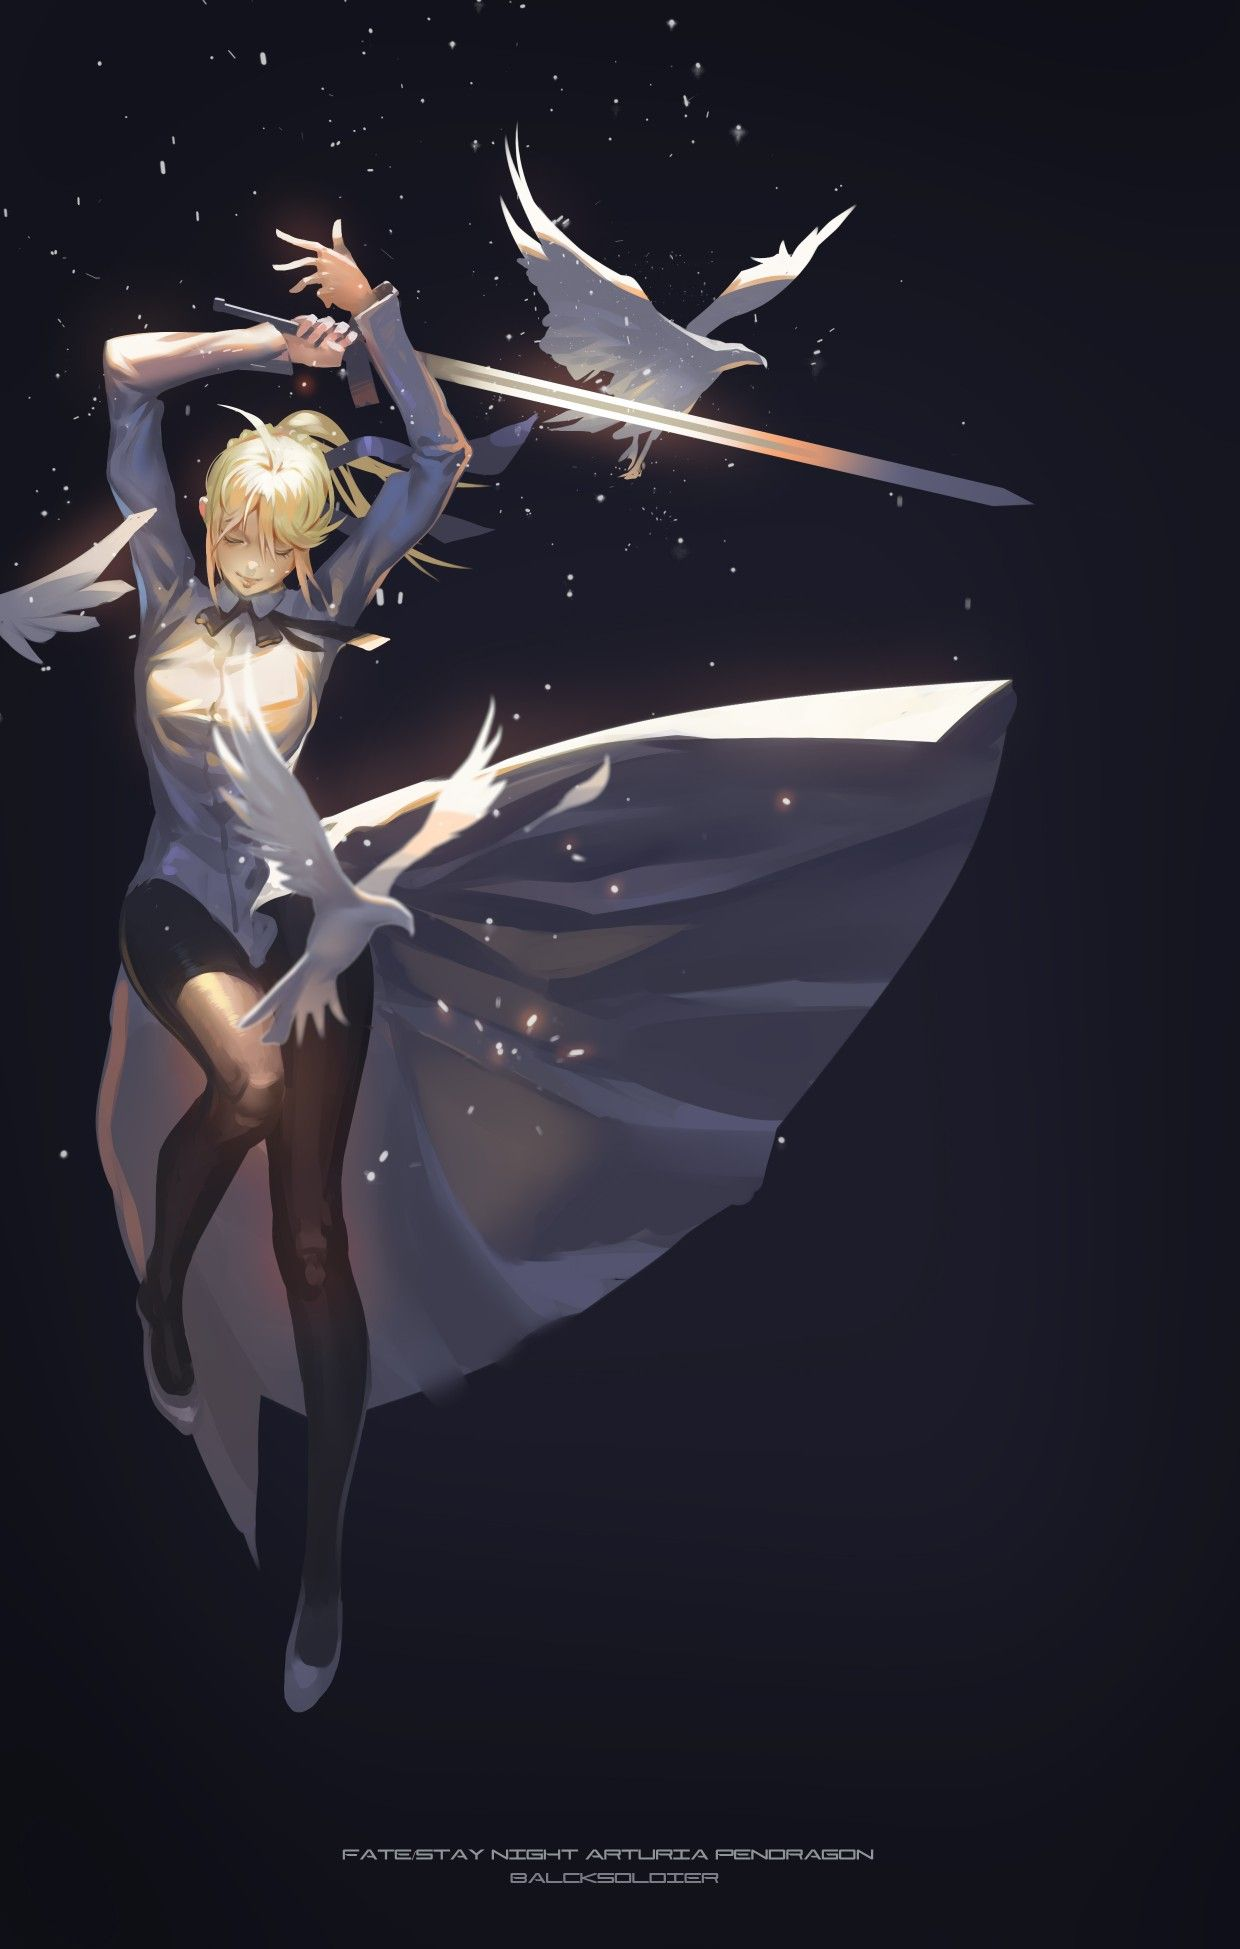 Pin By Viper On Fate Fate Anime Series Fate Stay Night Warrior Woman